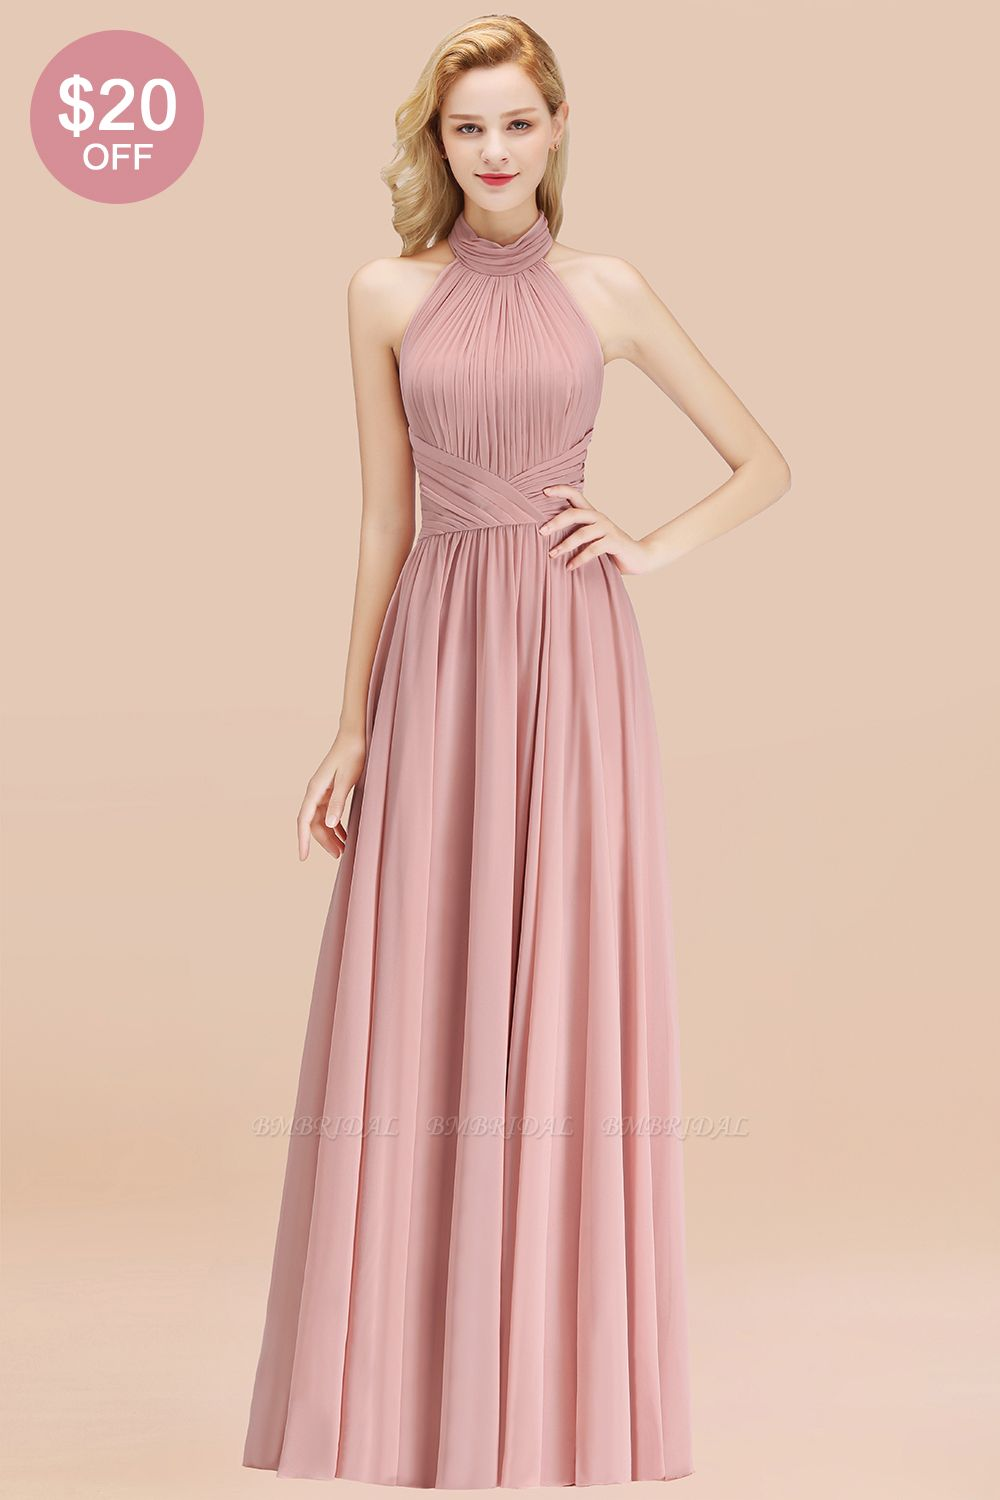 BMbridal Gorgeous High-Neck Halter Backless Bridesmaid Dress Dusty Rose Chiffon Maid of Honor Dress